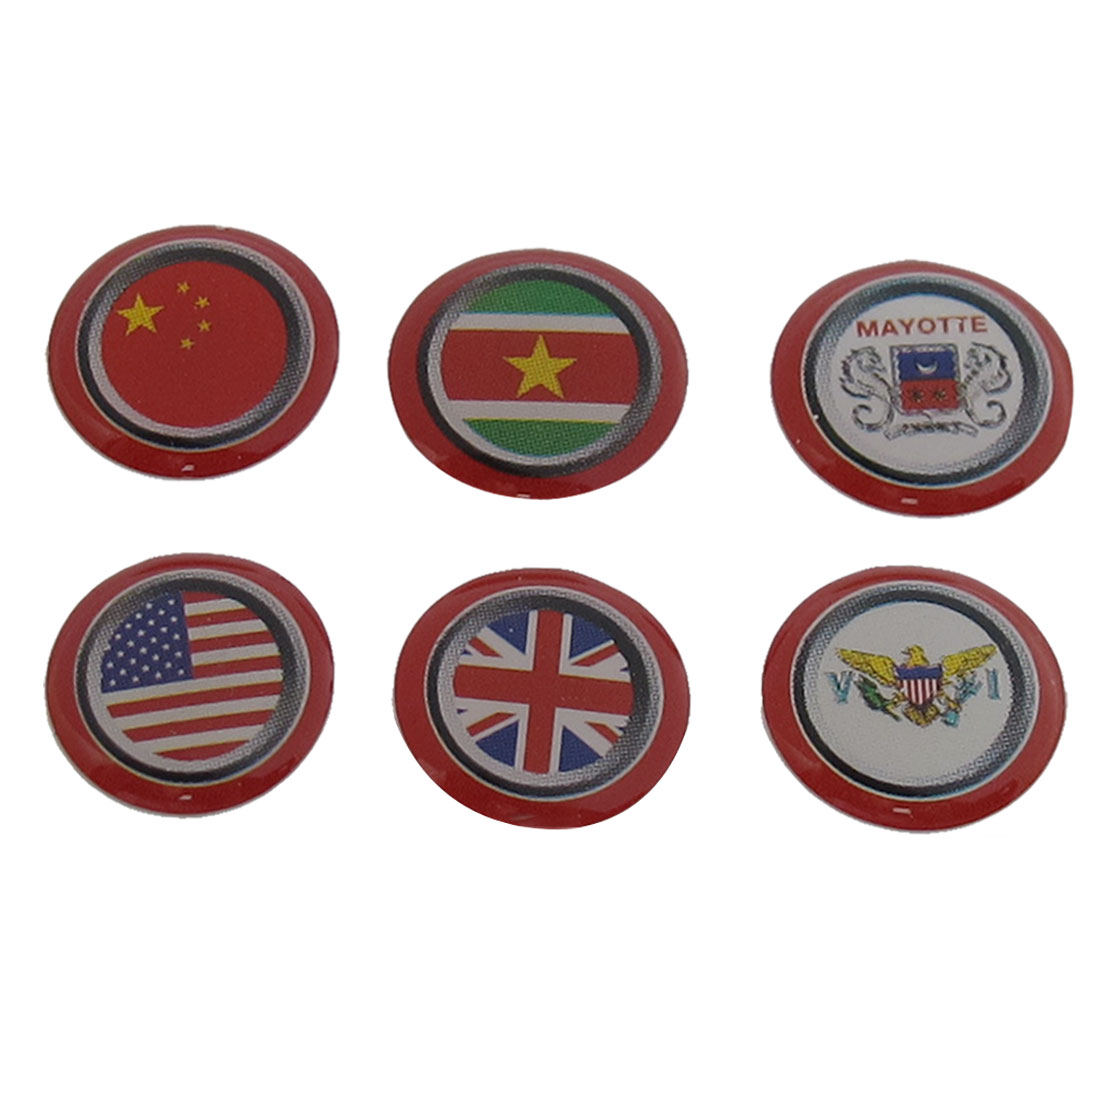 6 in 1 Plastic UK US Mayotte China Flag Home Button Sticker